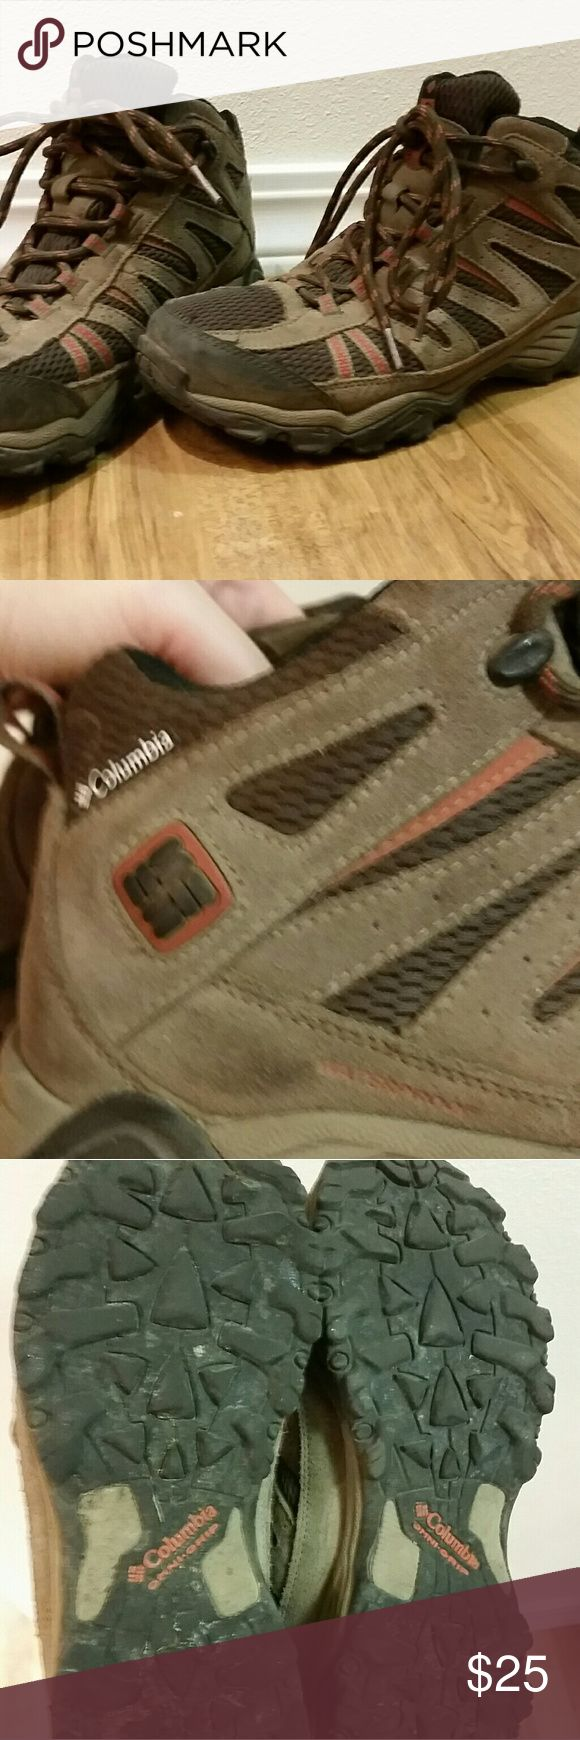 Columbia waterproof hiking boots Gently worn men's hiking boots for sale. Worn to 3 hikes but decided it was too small. Soles in great condition! A superficial mark inside due to orthodics. US 8 Euro 41. Columbia Shoes Athletic Shoes